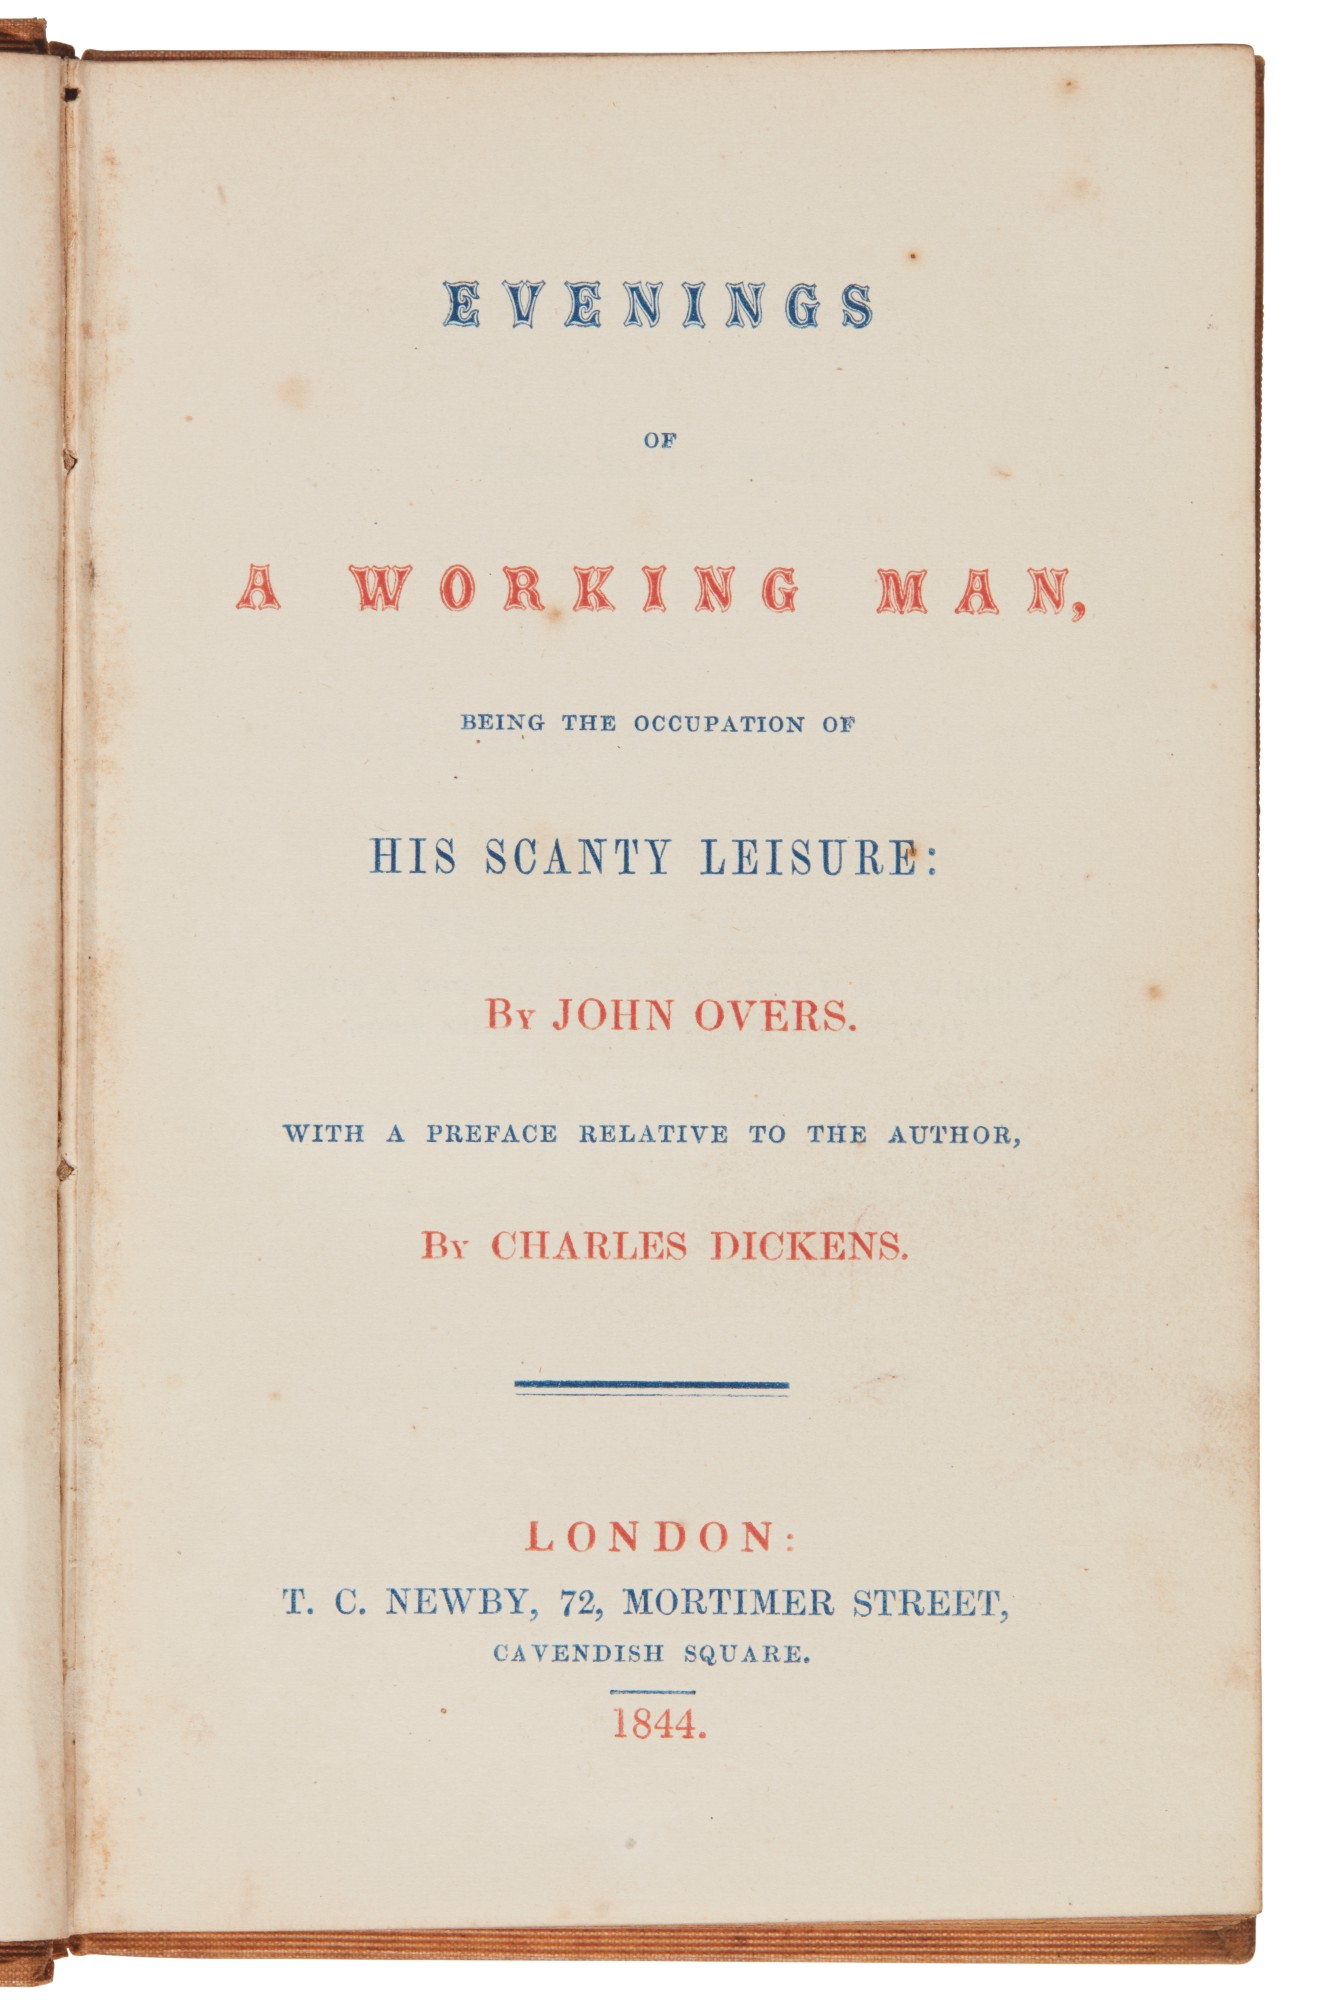 Overs--[Dickens], Evenings of a Working Man, 1844, first edition